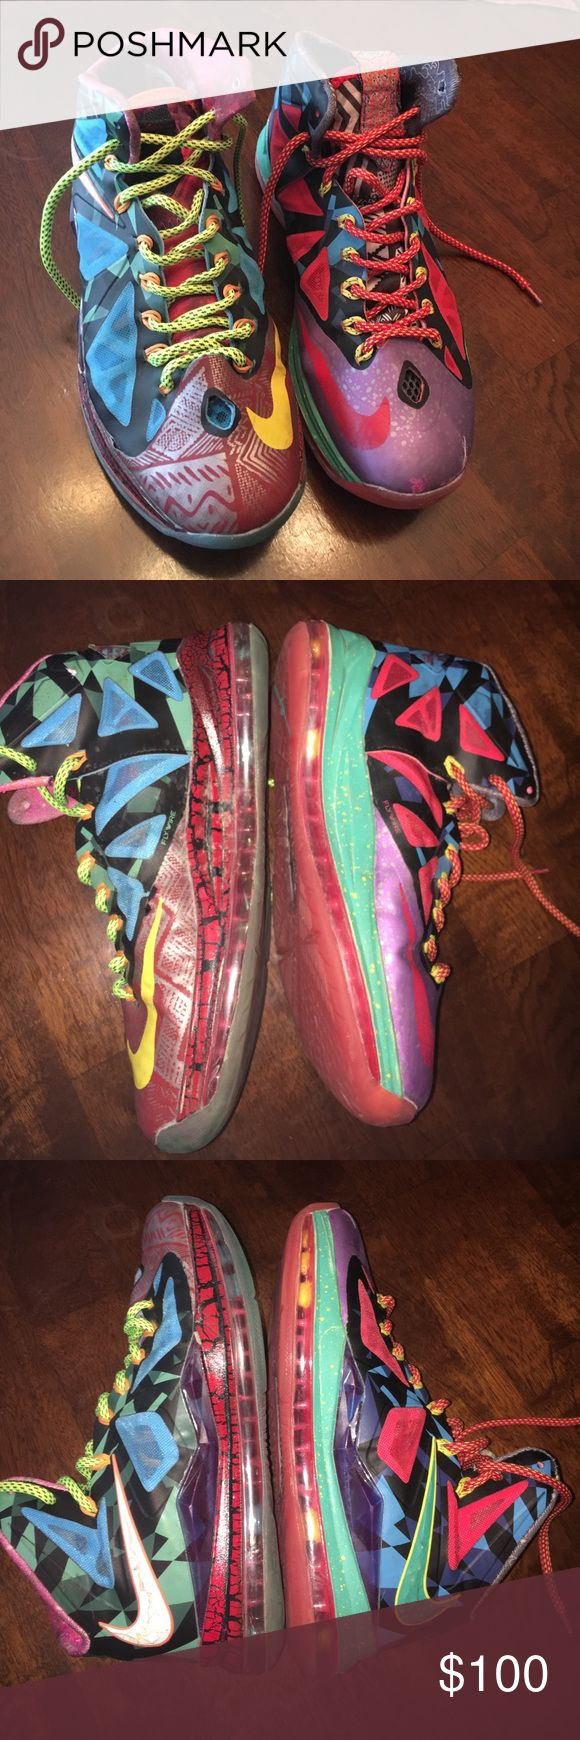 """Lebron James """"what the"""" basketball shoes! 🏀 Absolutely awesome sneakers! Limited edition MVP shoes by Lebron James. A few flaws, missing the gold """"P"""" on tongue yet not noticeable when shoes are tied. Great condition though! Daughter wore for one AAU season. Men's sz 8.5 or women's 9.5-10. Nike Shoes Sneakers"""